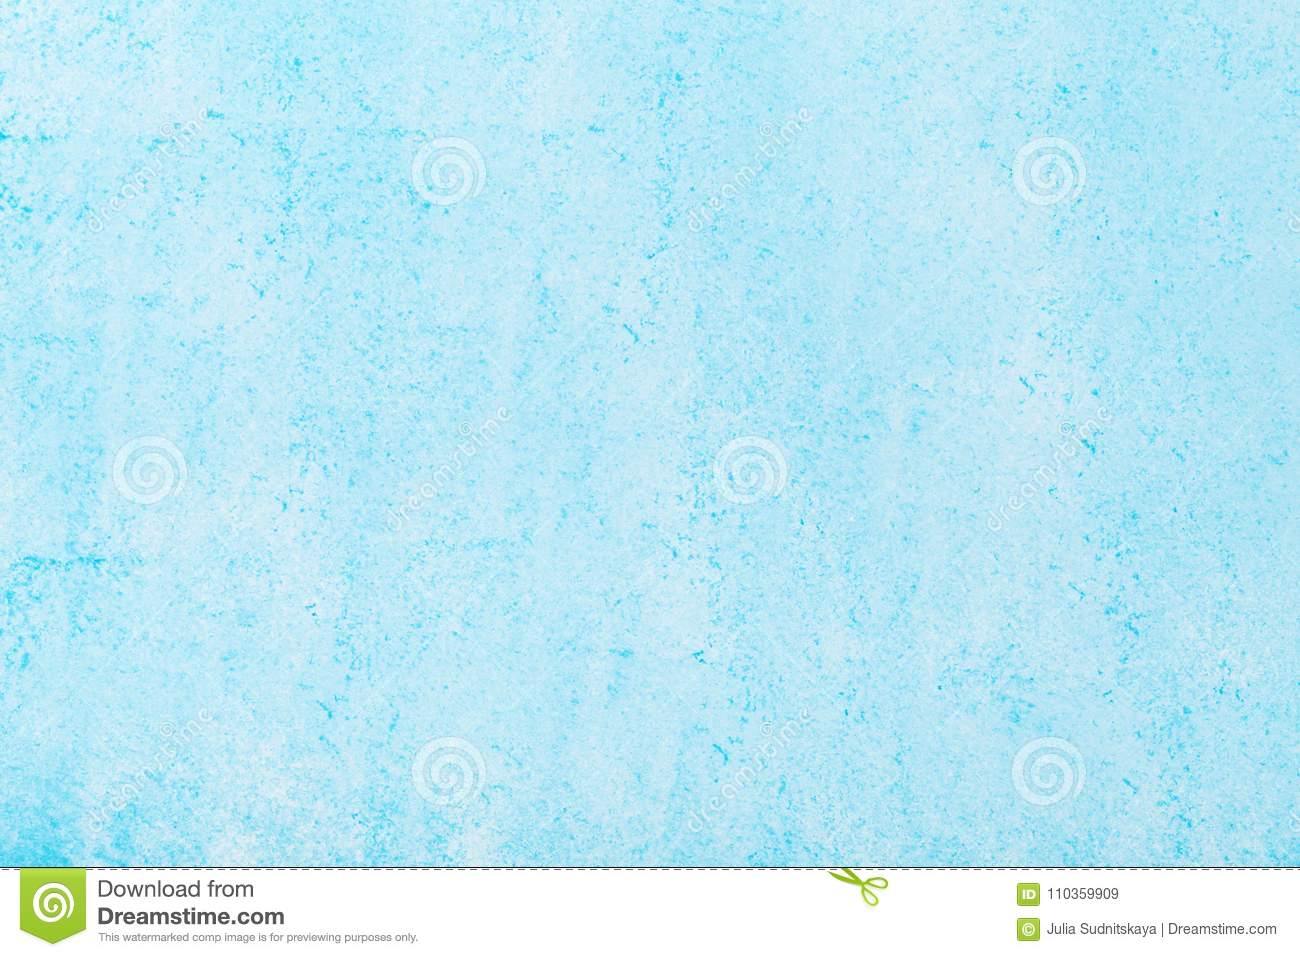 Blue painted pastel background.